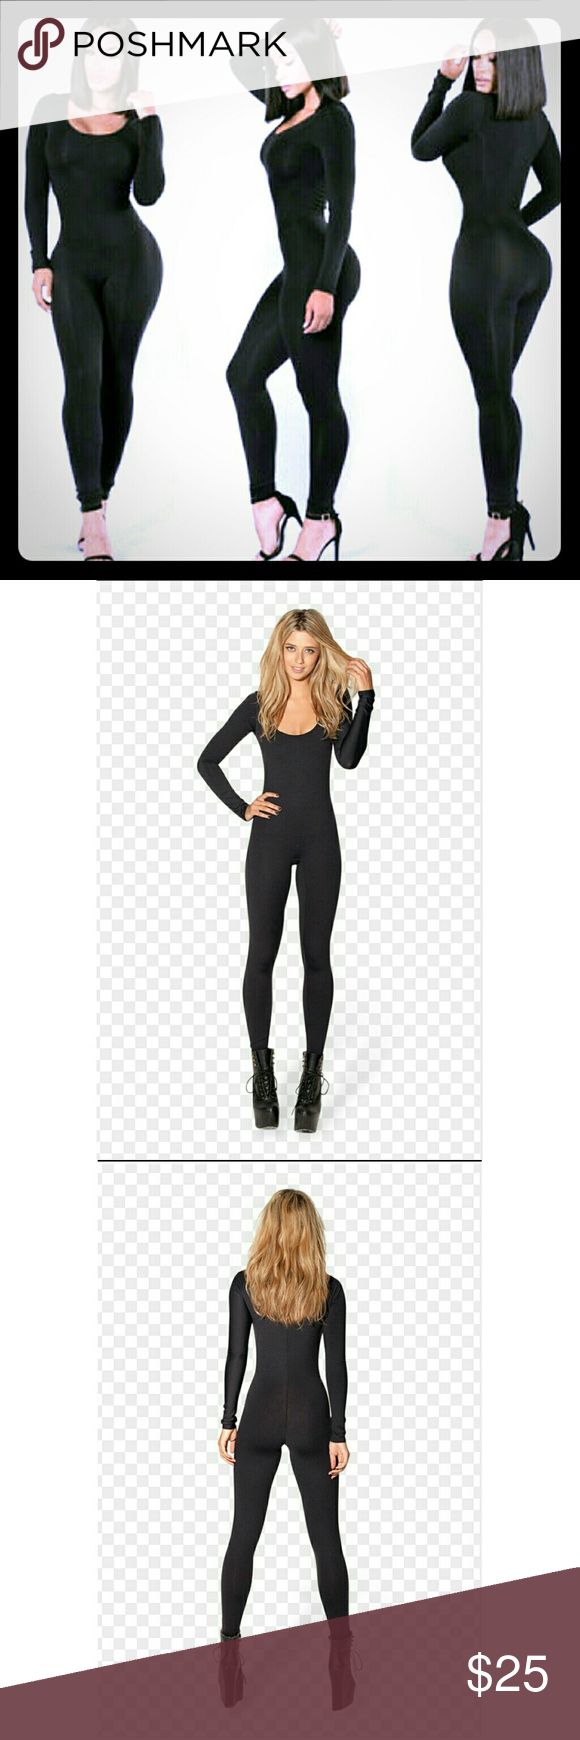 NWT! Meowwww....  Sexy black catsuit NWT. One piece sexy catsuit. Dress it up w/heels or dress it down with boots. Perfect for any occasion Other